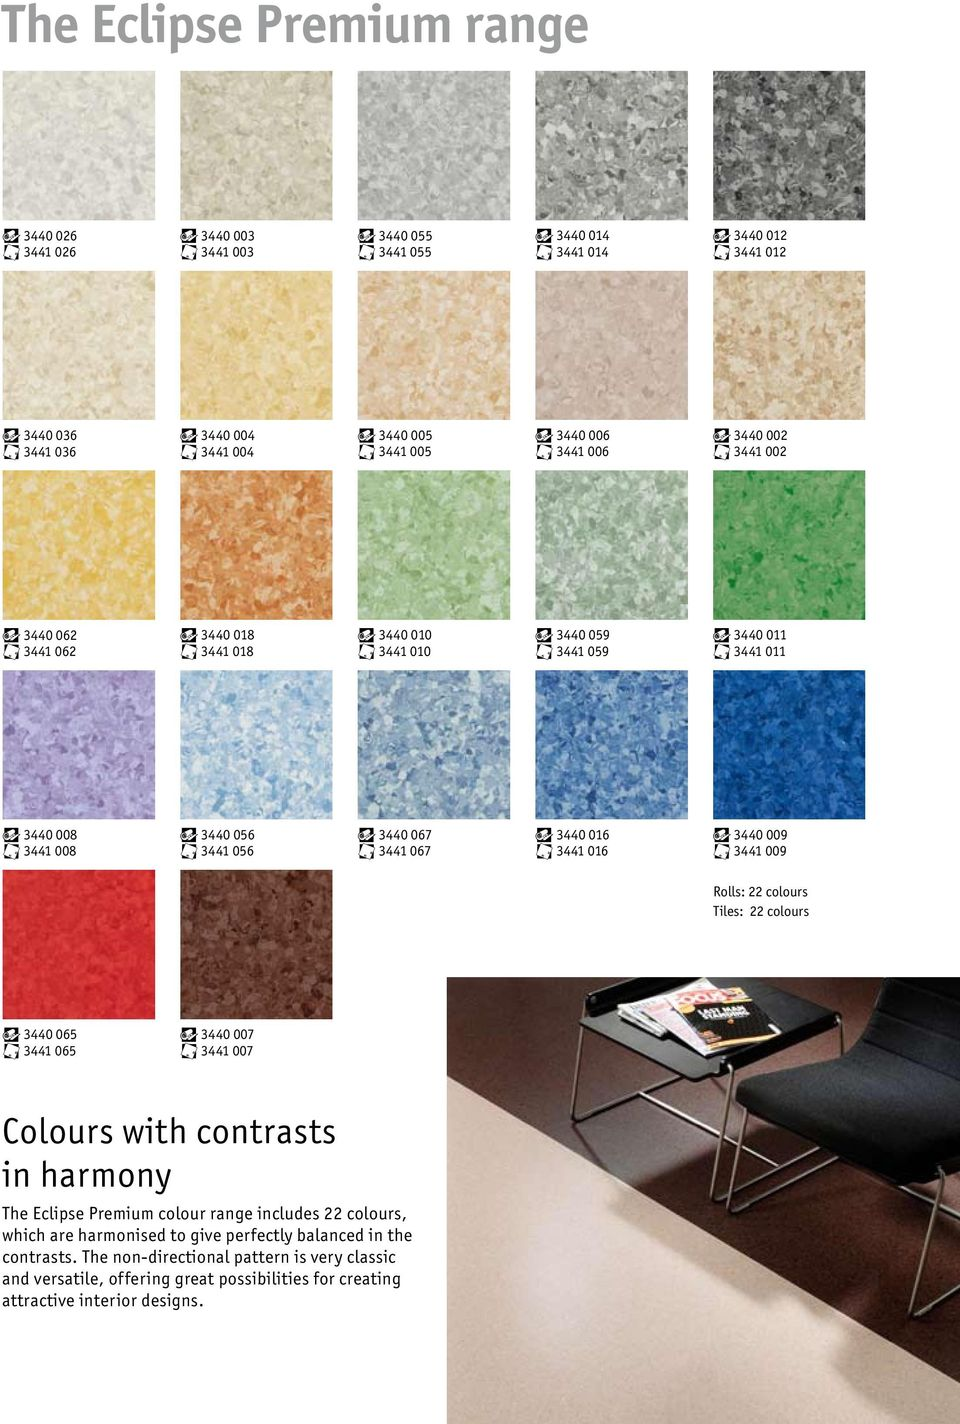 3440 009 3441 009 Rolls: 22 colours Tiles: 22 colours 3440 065 3441 065 3440 007 3441 007 Colours with contrasts in harmony The Eclipse Premium colour range includes 22 colours, which